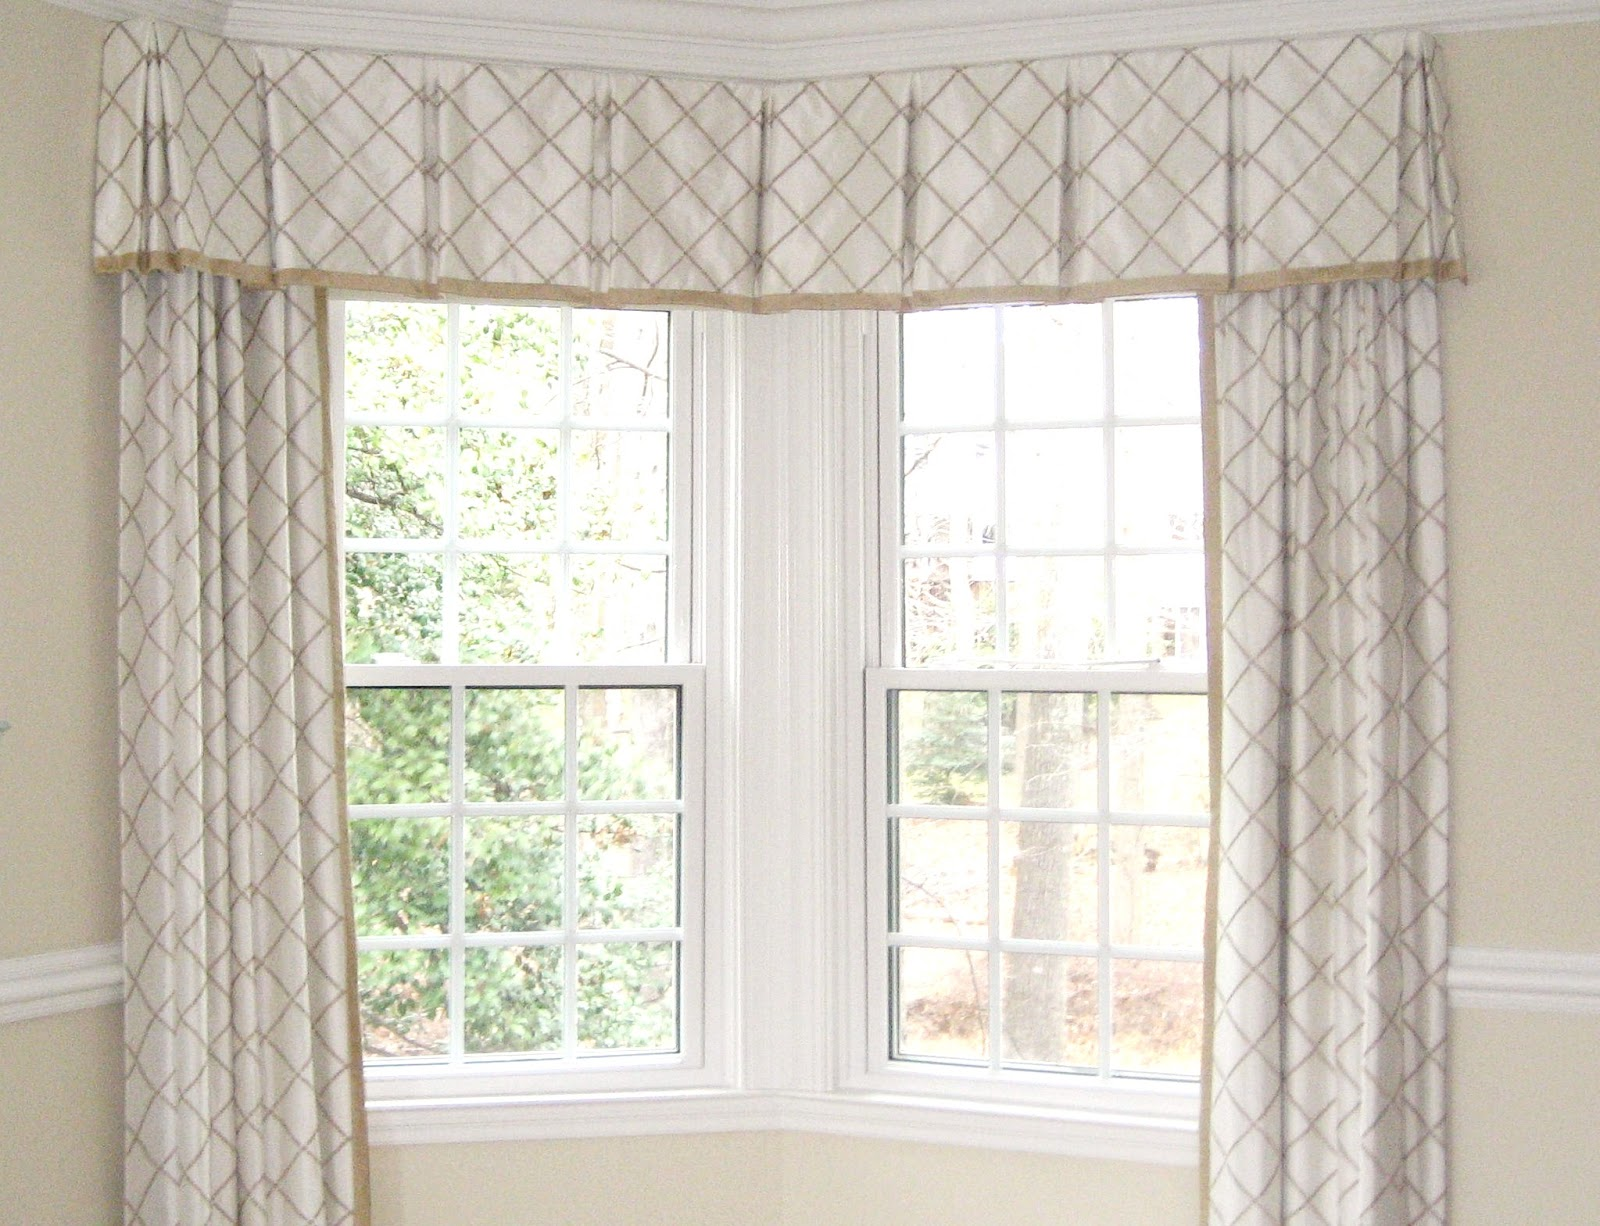 lambrequin window treatment those corner windows